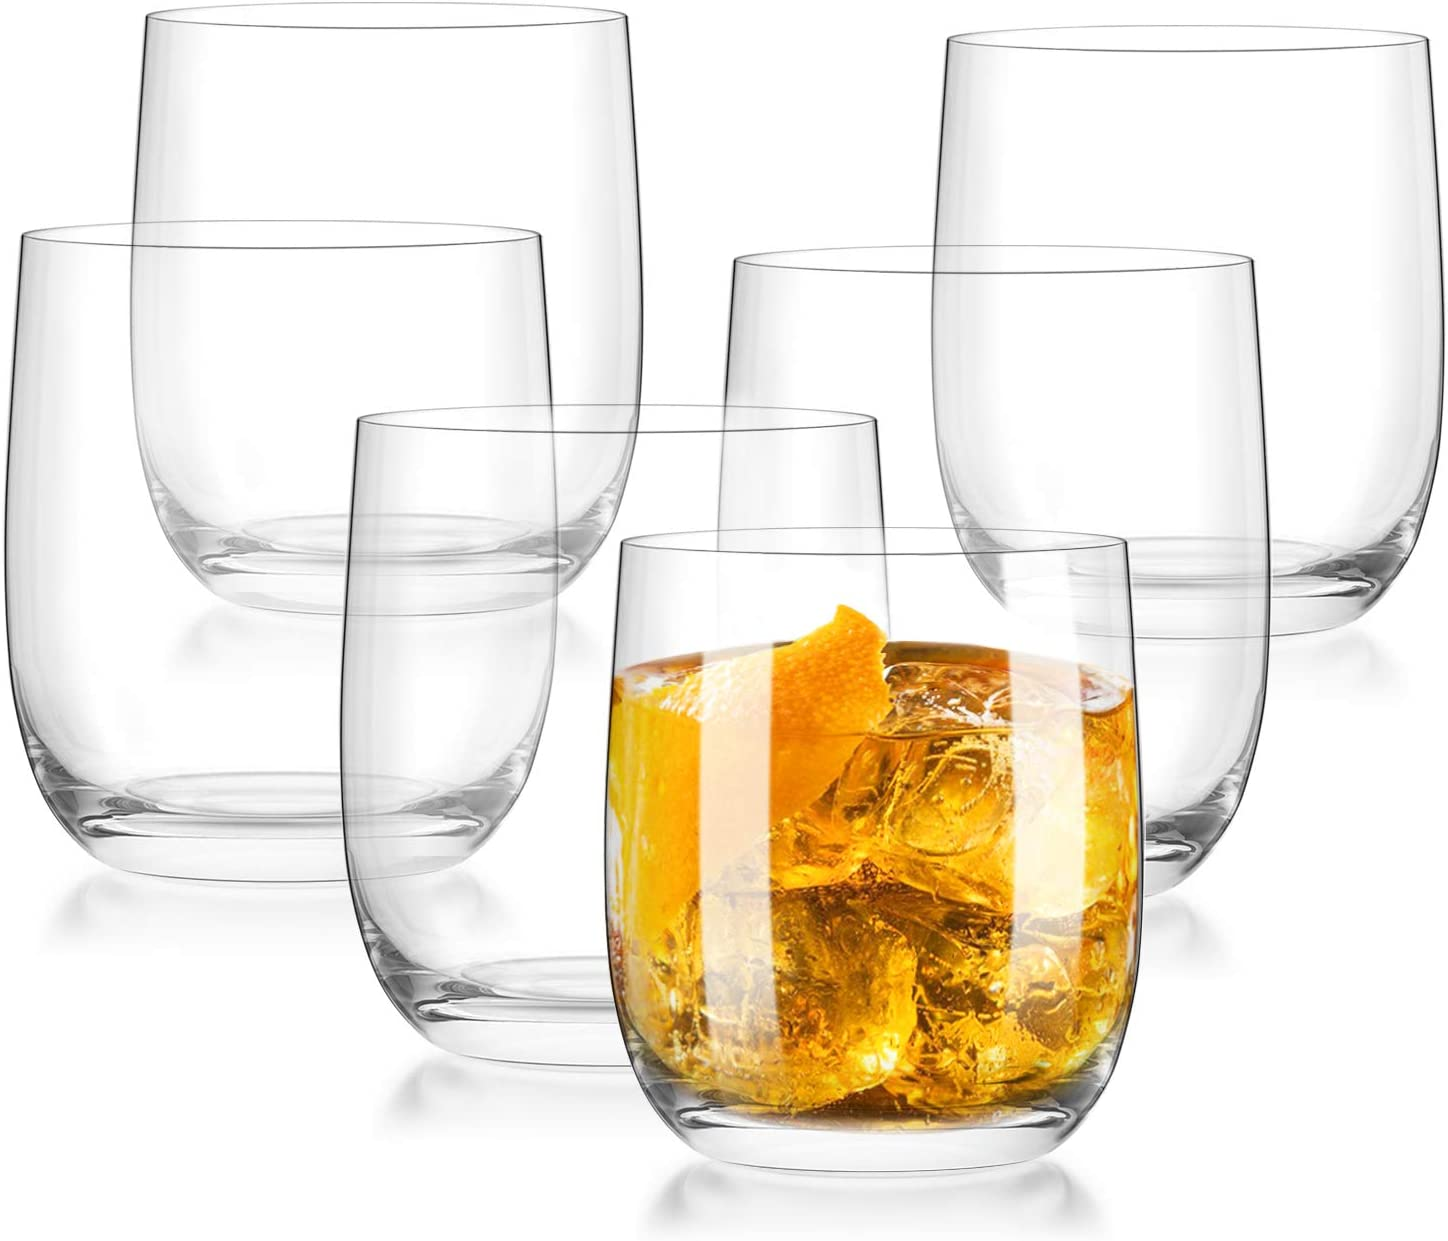 CREATIVELAND Crystal Tumbler Glasses Set of 6 LEAD-FREE CRYSTAL GLASSES, Brilliant clarity, Thin Rim, Whiskey glass, Cocktails glasses,Drinking cups,Old fashion glasses,Rocks Glasses 13.9oz/395ML